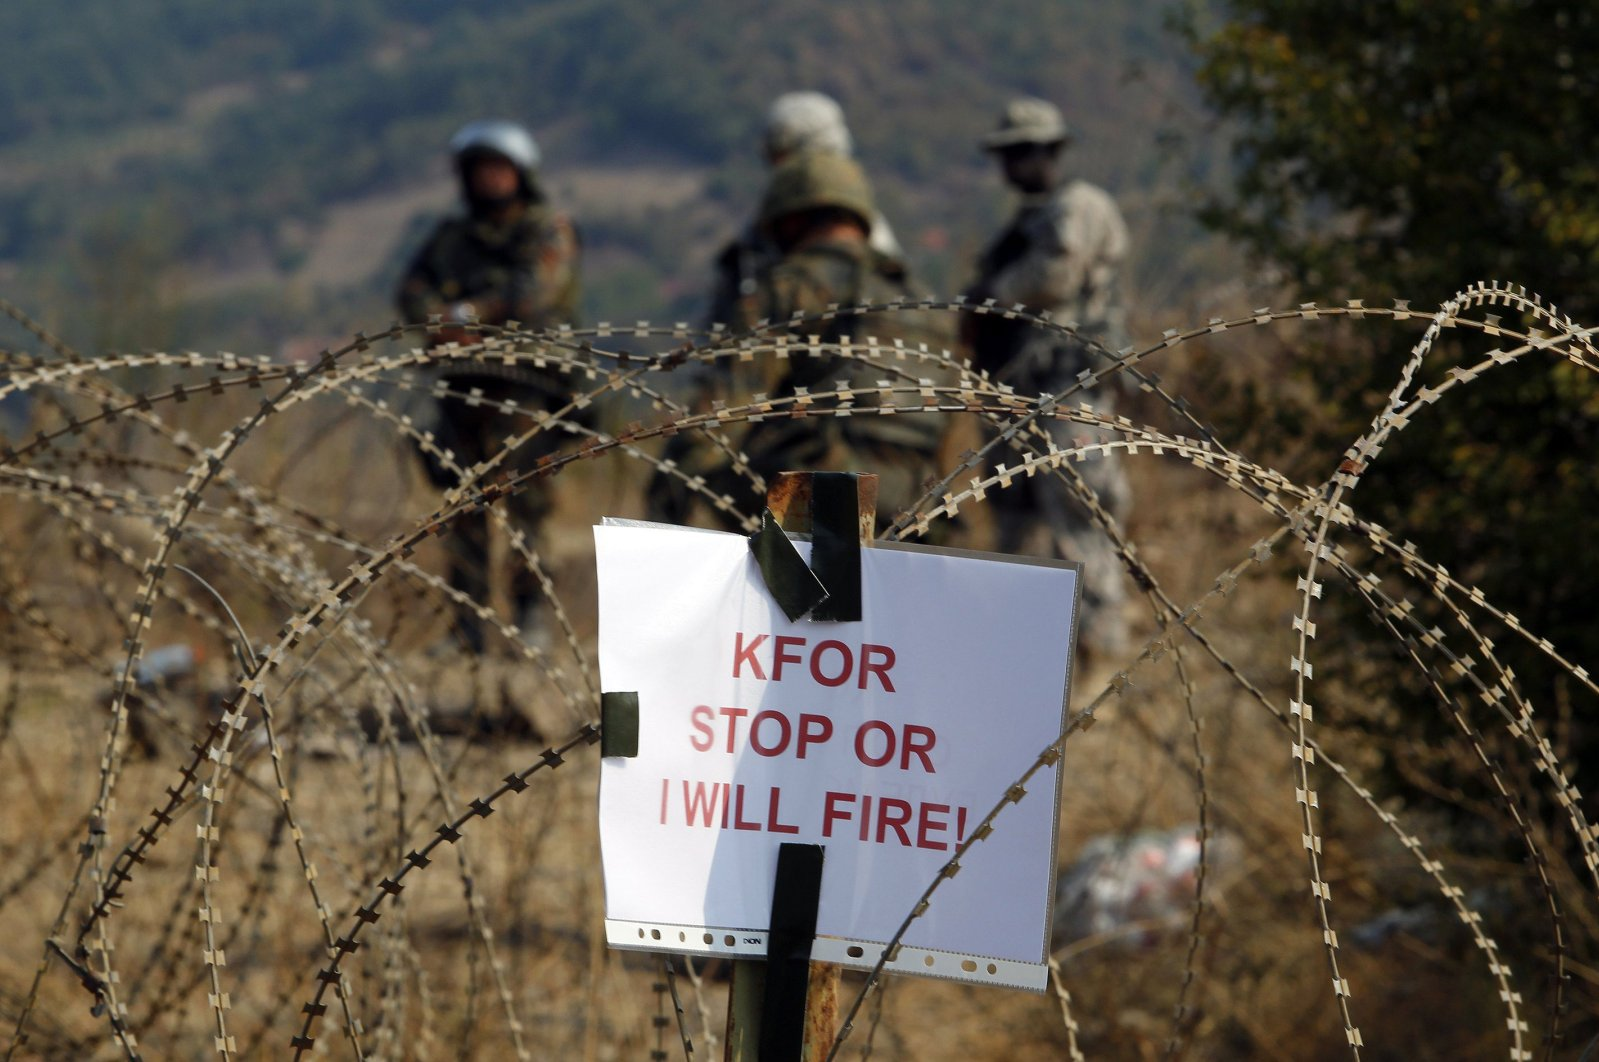 Kosovo Force (KFOR) soldiers stand guard near the closed Serbia-Kosovo border crossing of Jarinje, Sept. 16, 2011. (REUTERS Photo)